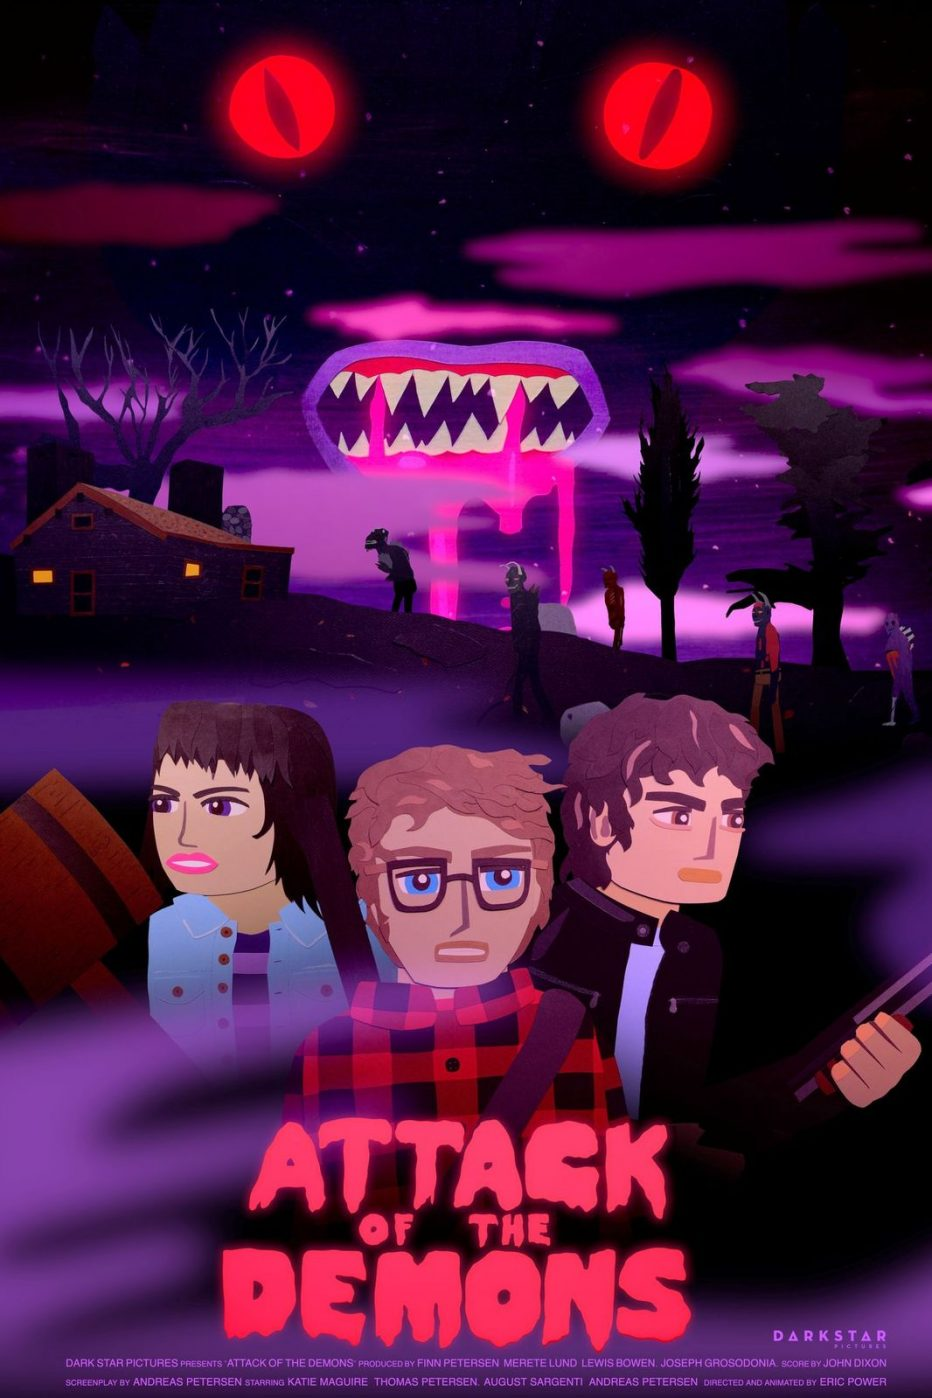 ATTACK OF THE DEMONS 😈- Animated Adult Horror Film - in Virtual Cinemas October 30 with VOD Release to follow - My Bloody Reviews